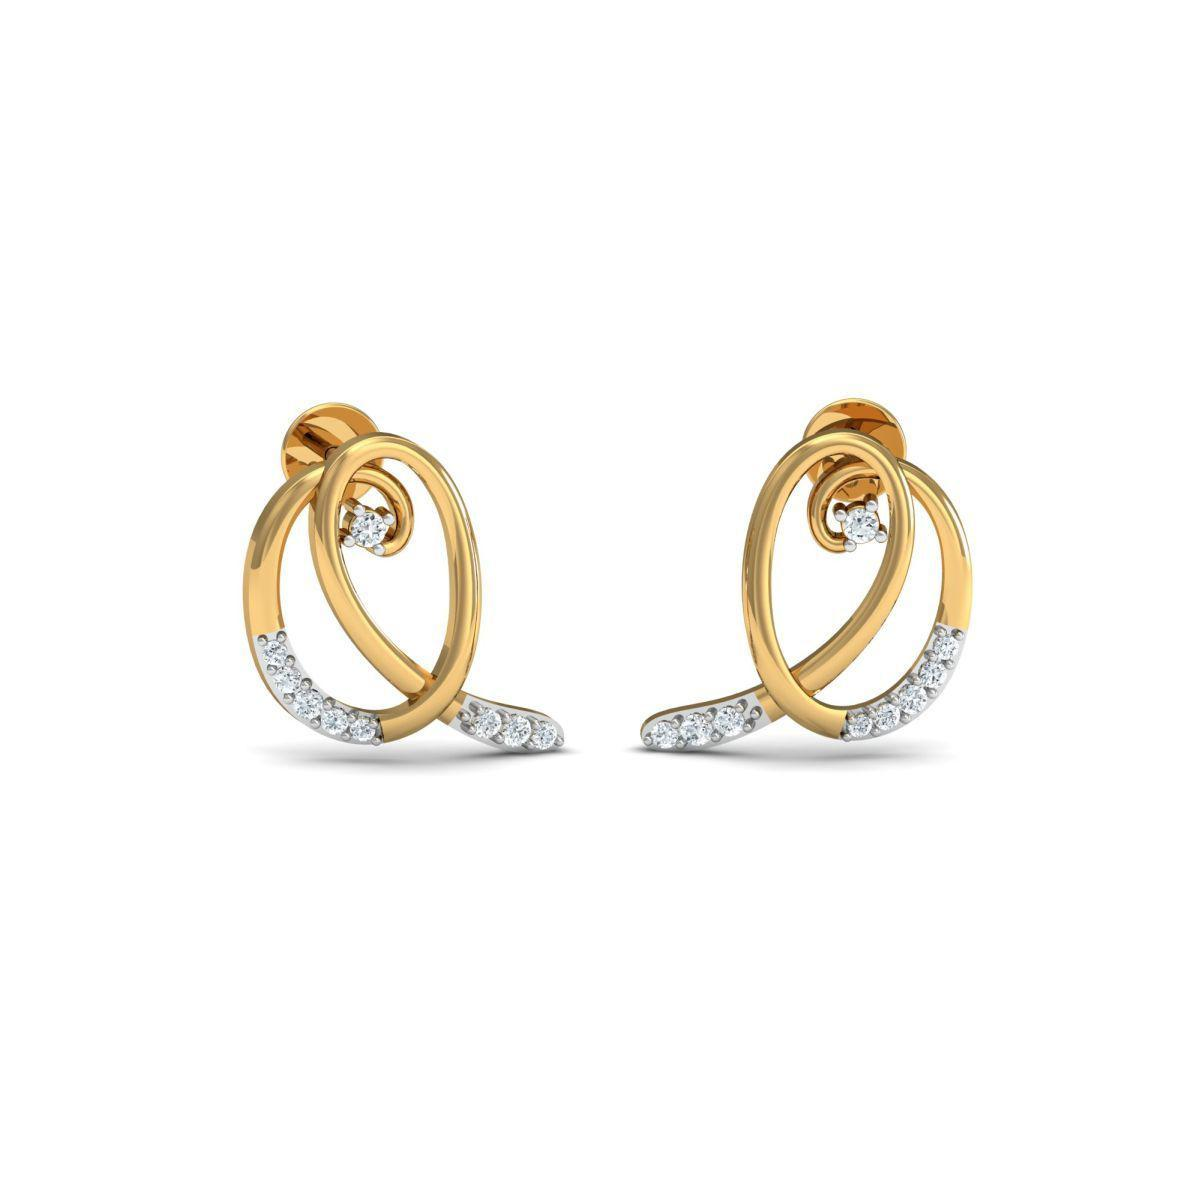 Diamoire Jewels Infinity Diamond Pave Stud Earrings in 18kt Yellow Gold FjHmjwUJy